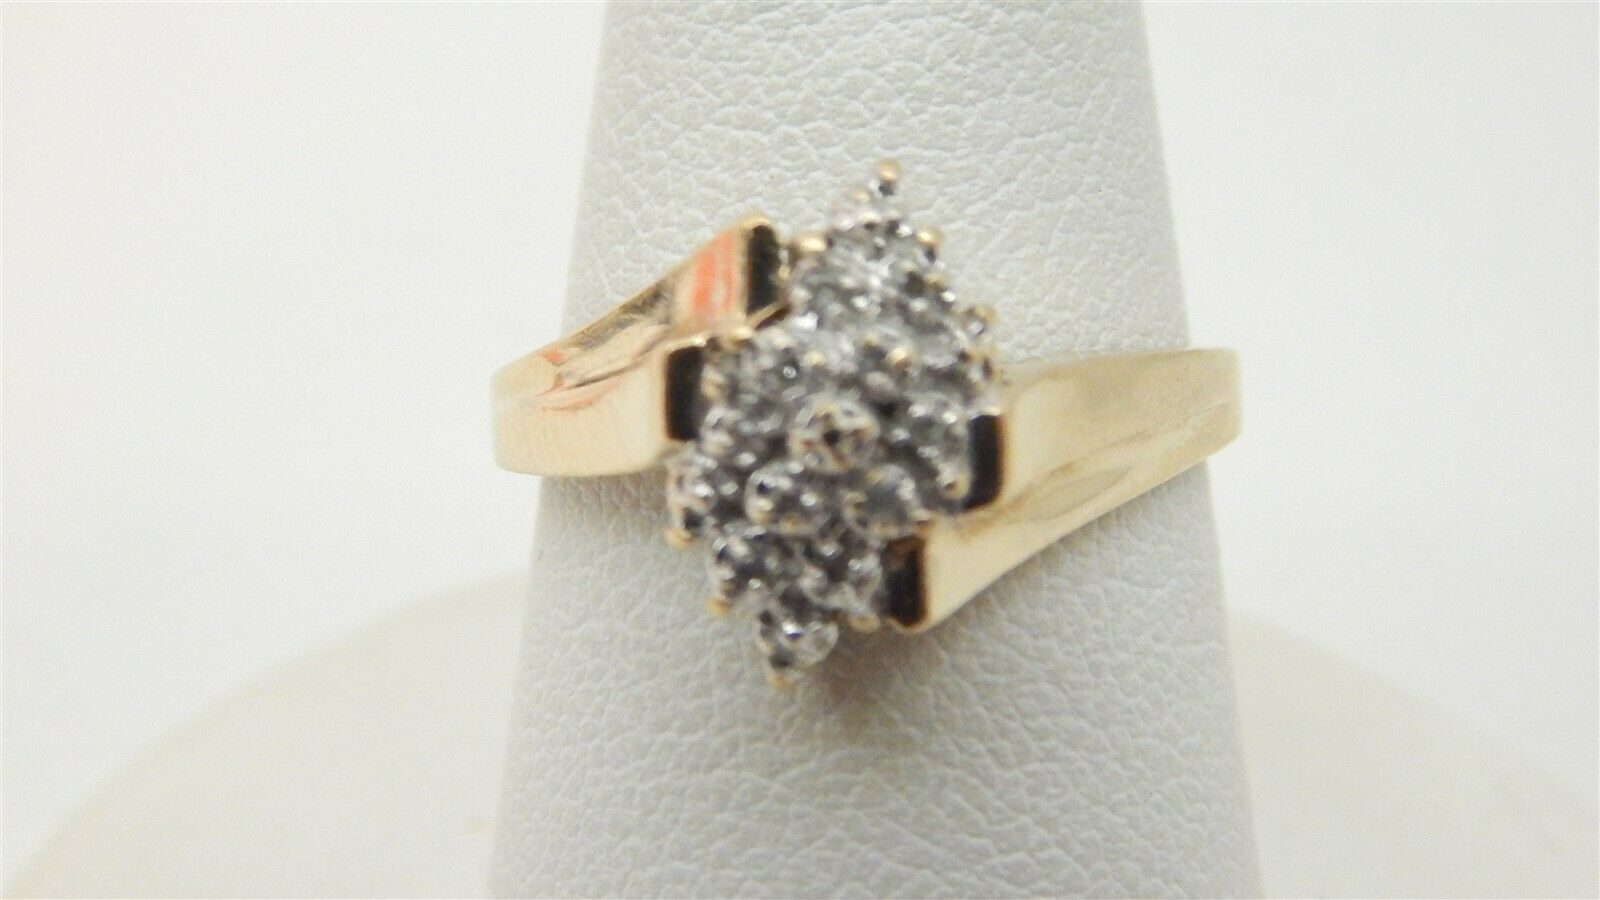 18k Yellow Gold Diamond Solitaire Accented Ring 1.38 Ct Vvs1 Channel Set Lady Diamond